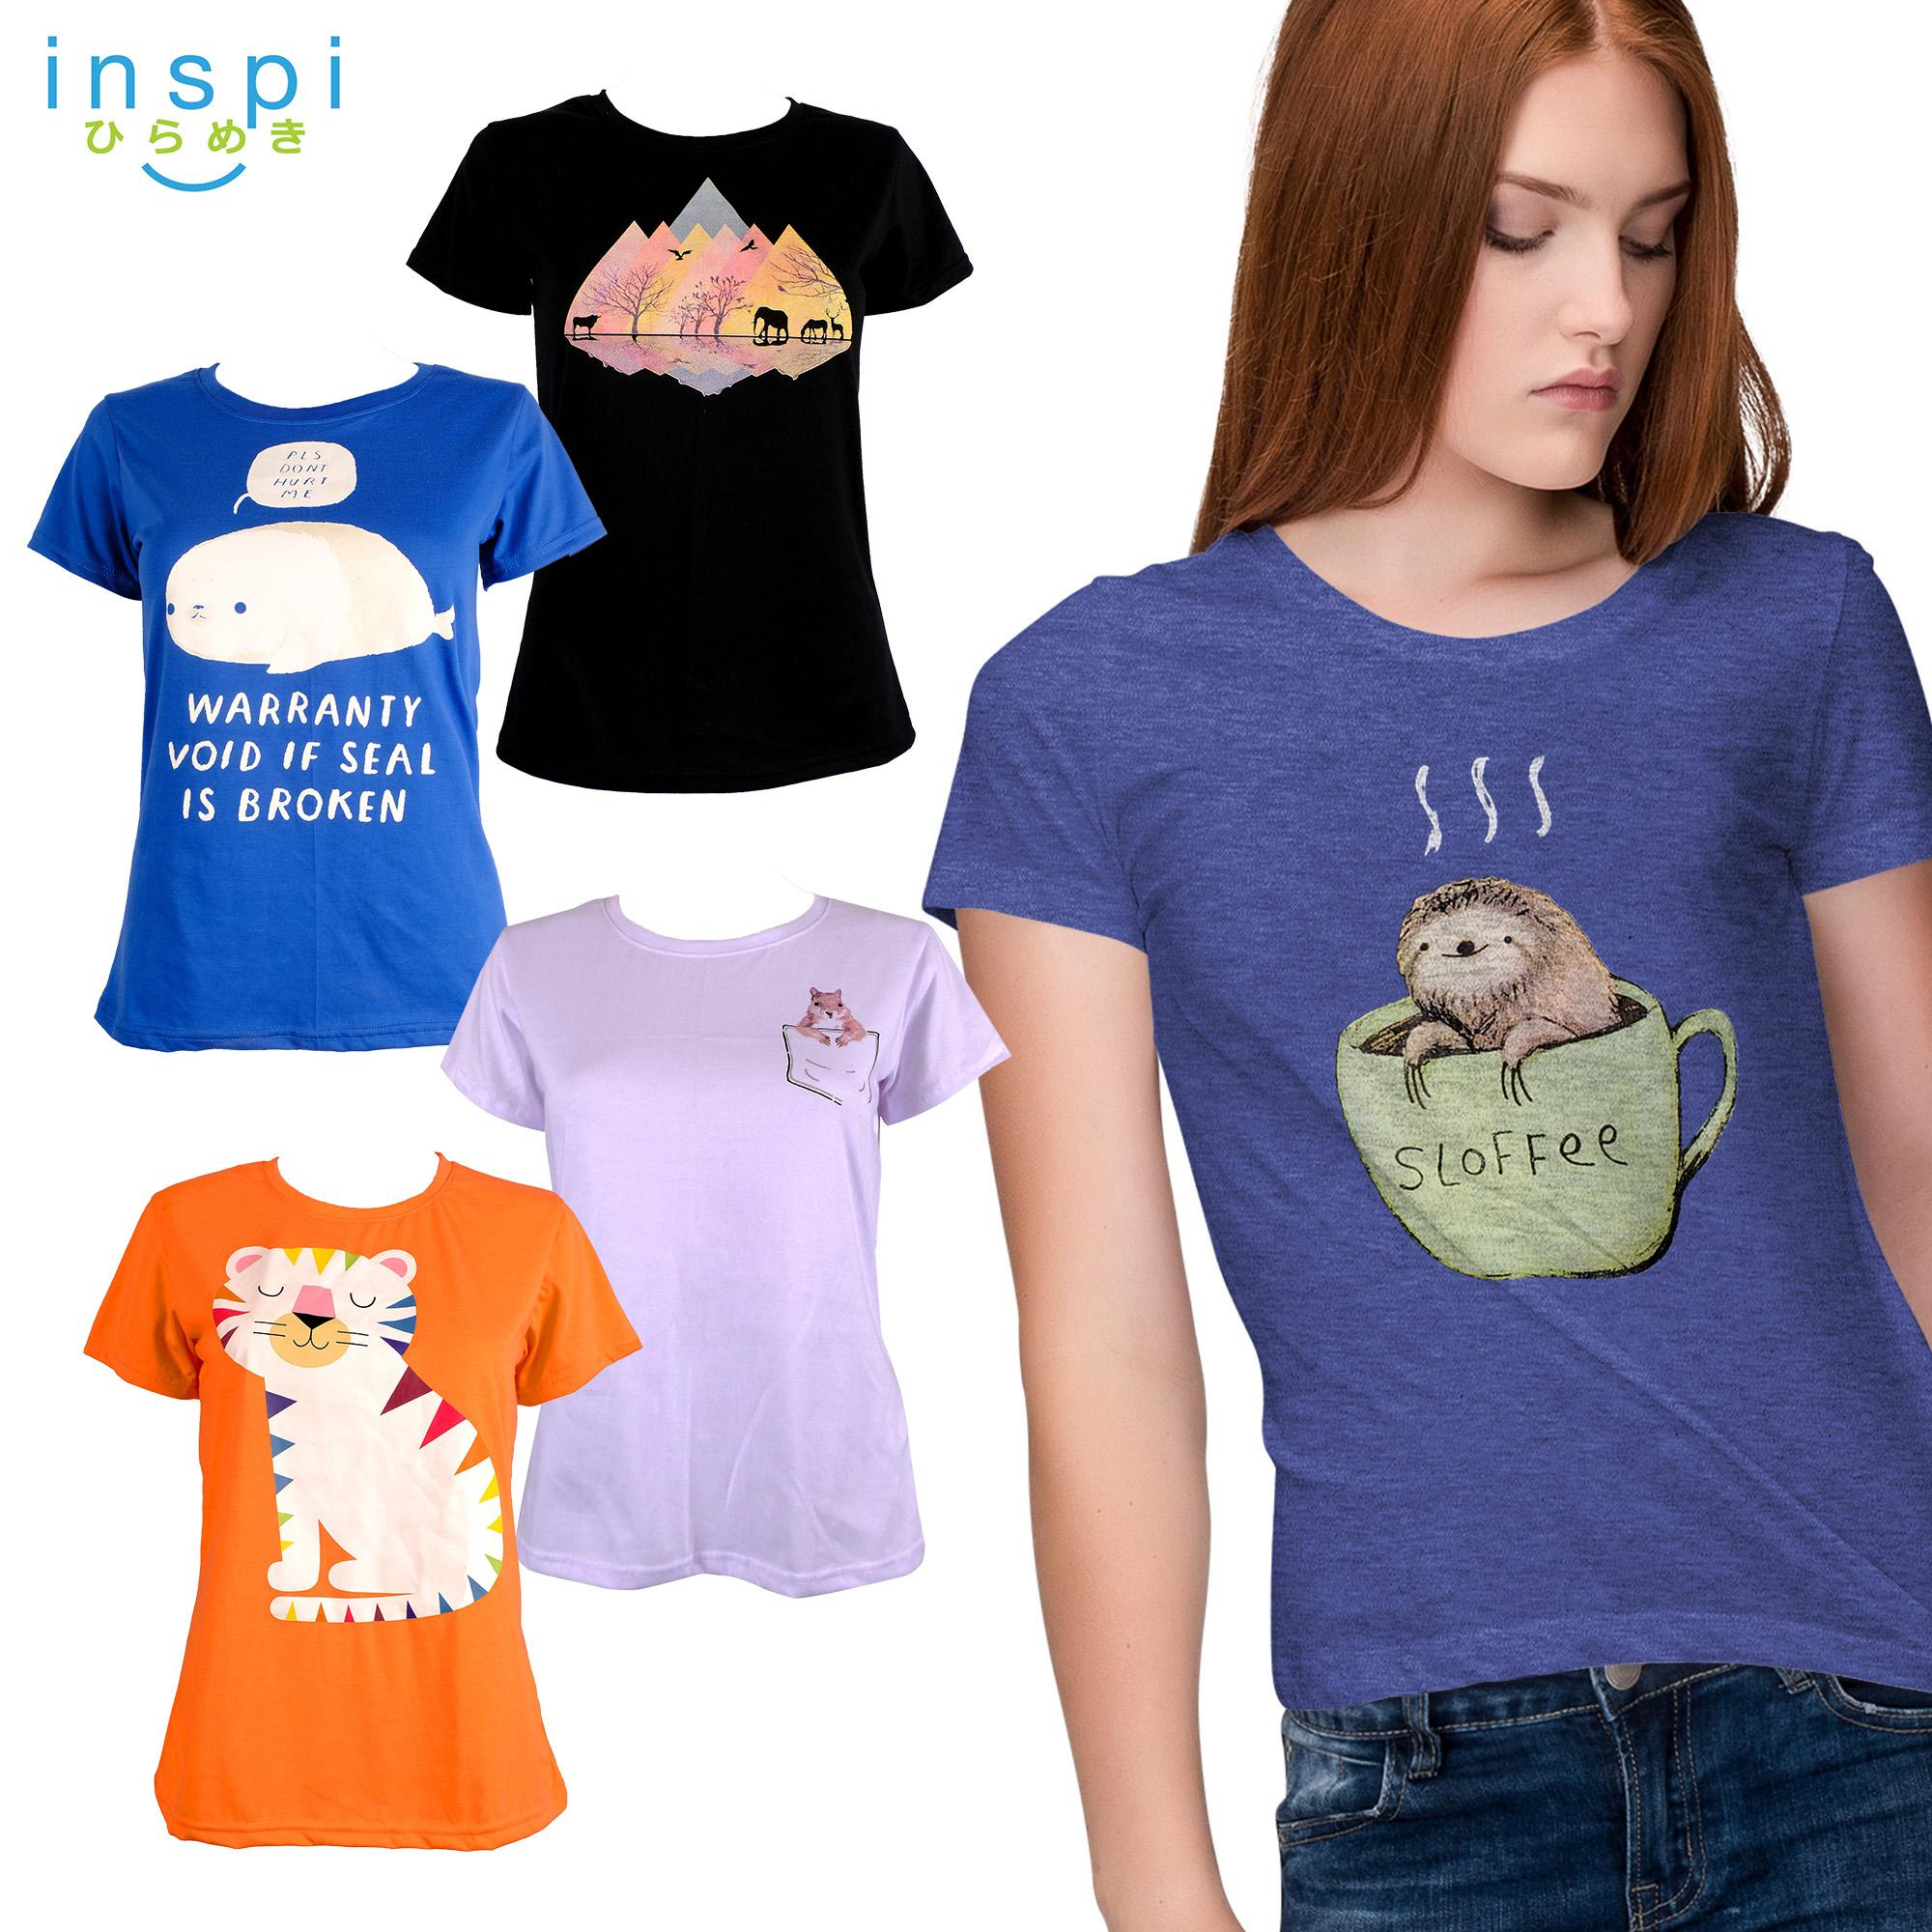 61710f4380 INSPI Tees Ladies Pet Collection tshirt printed graphic tee Ladies t shirt  shirts women tshirts for